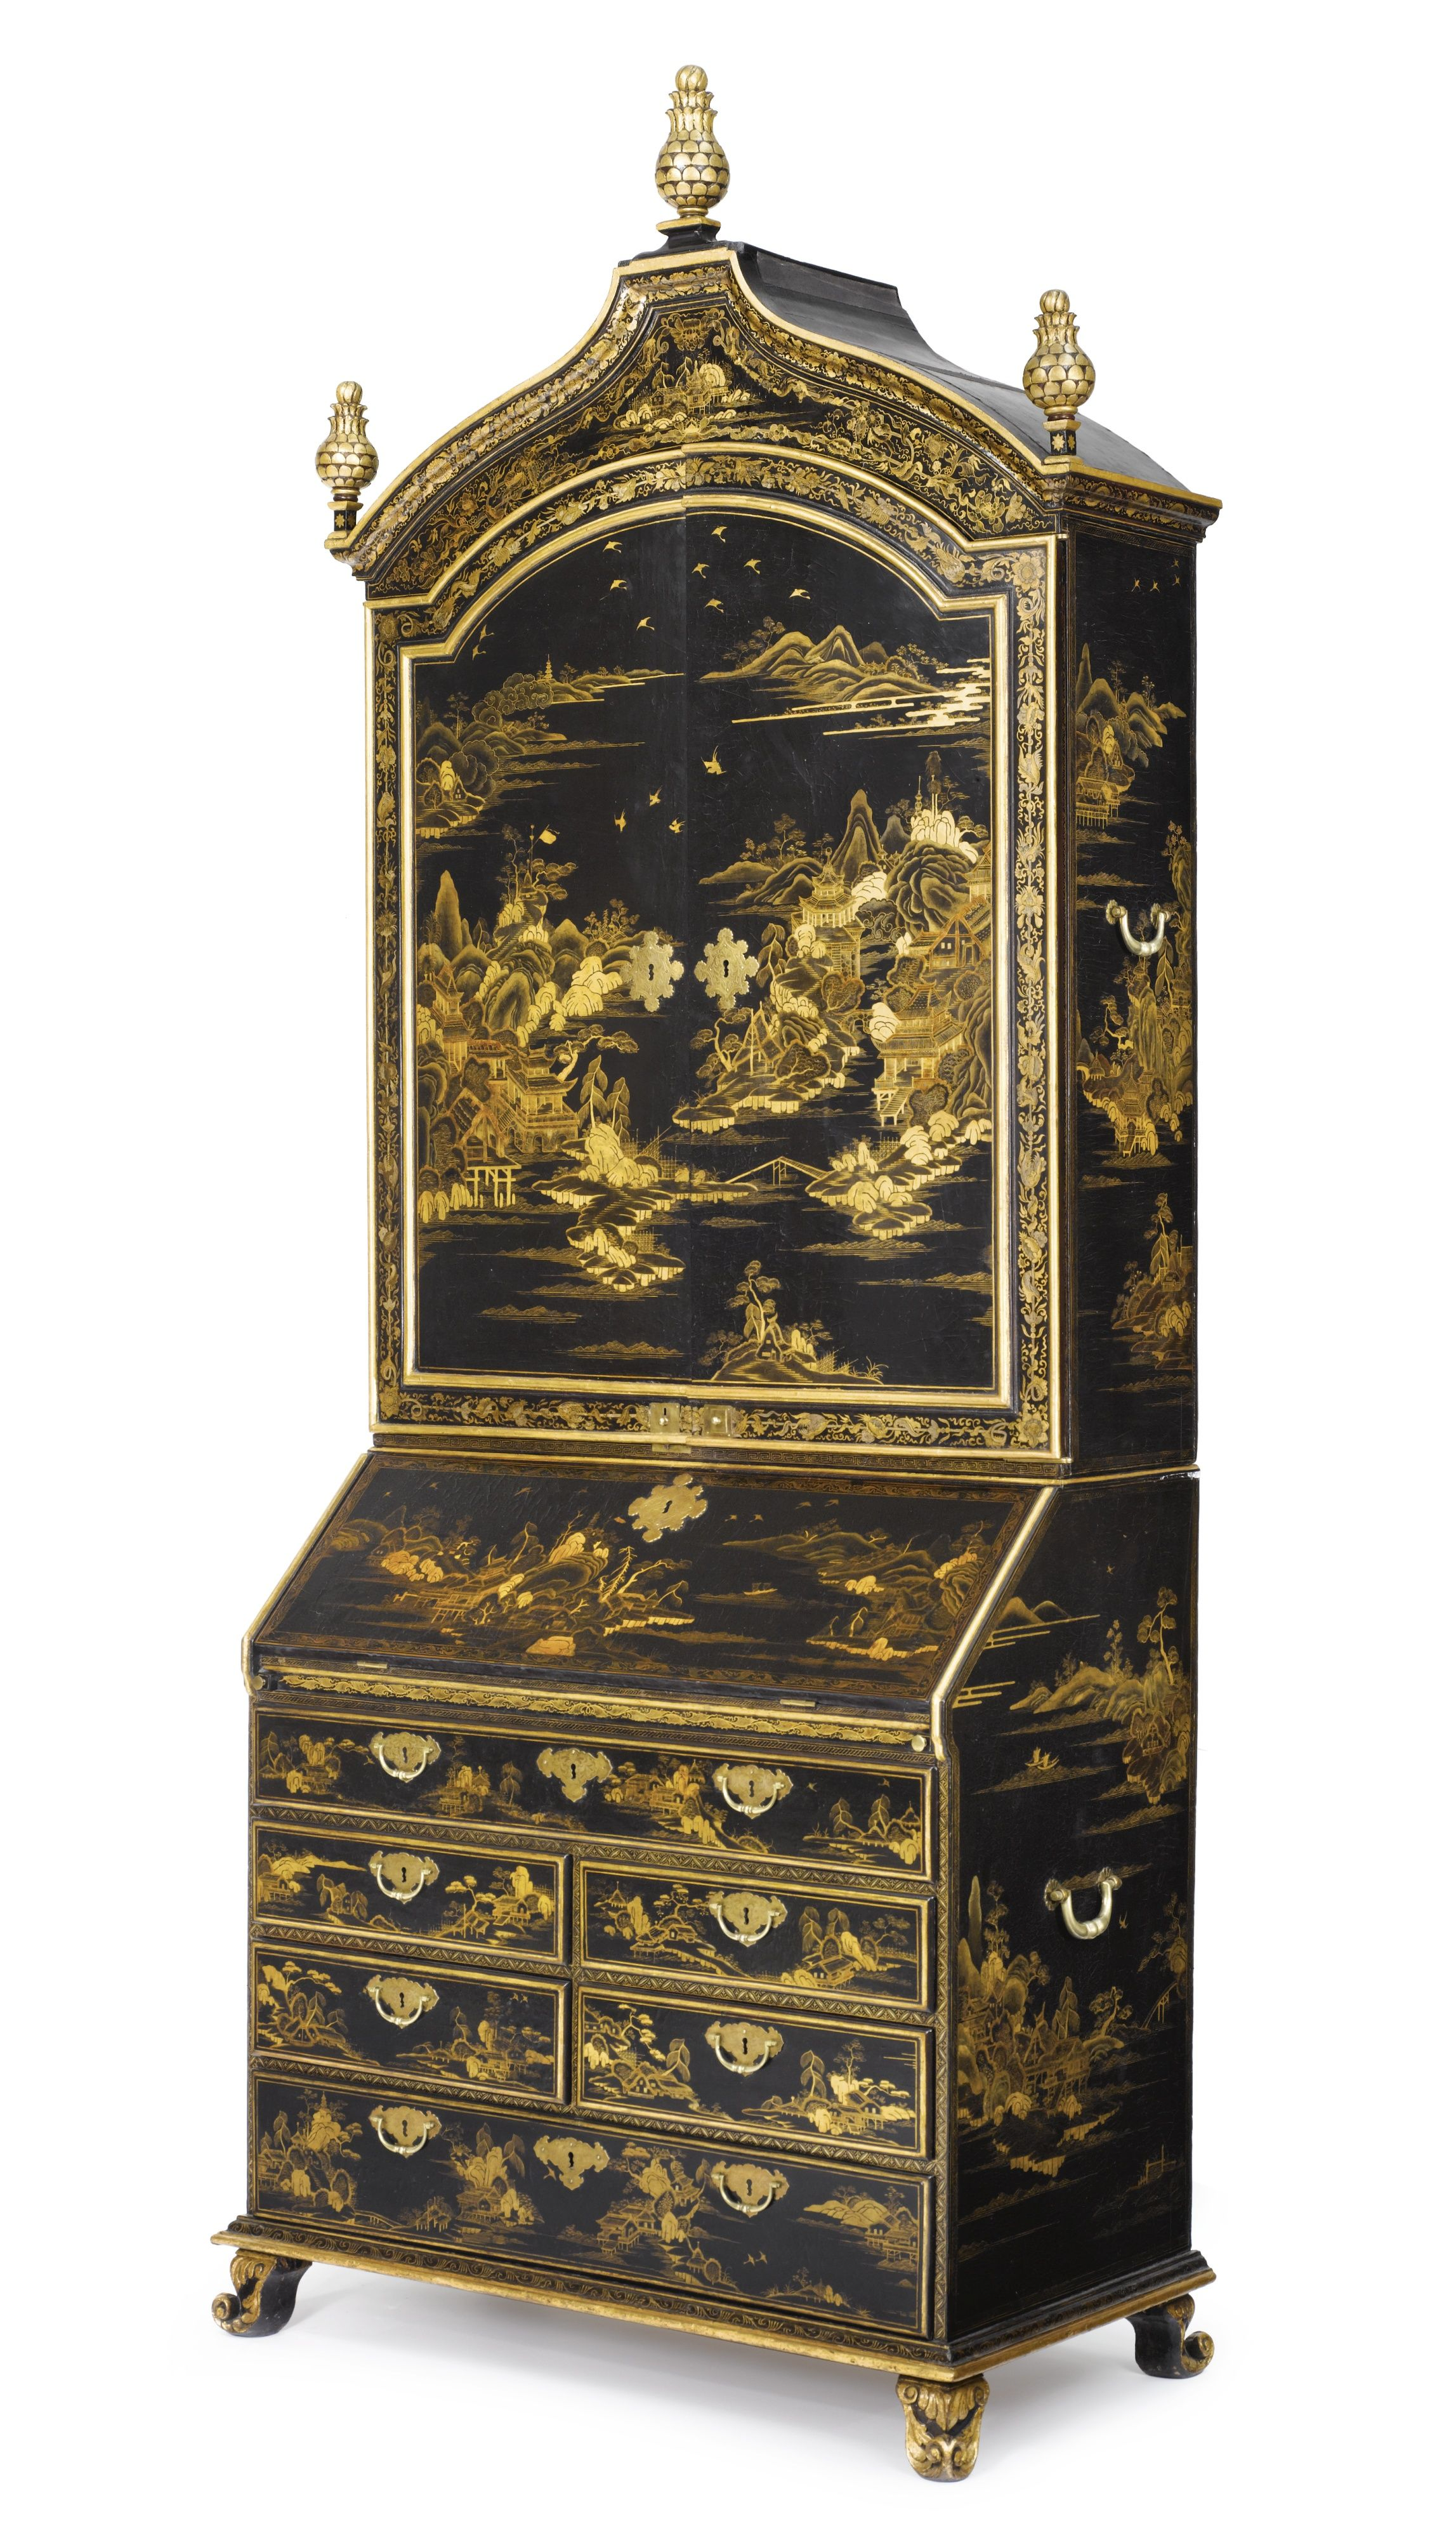 Muebles Chinos Antiguos A Fine Chinese Export Parcel Gilt Black Lacquer Bureau